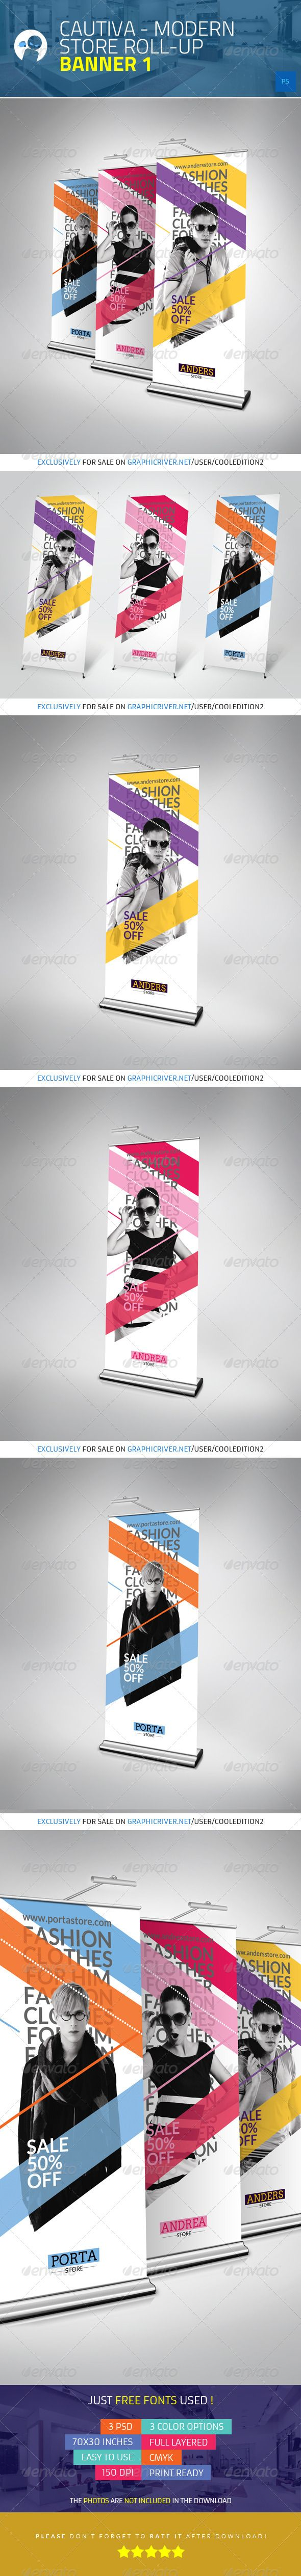 Cautiva  Modern Store  Roll Up Banner 1 — Photoshop PSD #mall #rollup • Available here → https://graphicriver.net/item/cautiva-modern-store-roll-up-banner-1/4635183?ref=pxcr